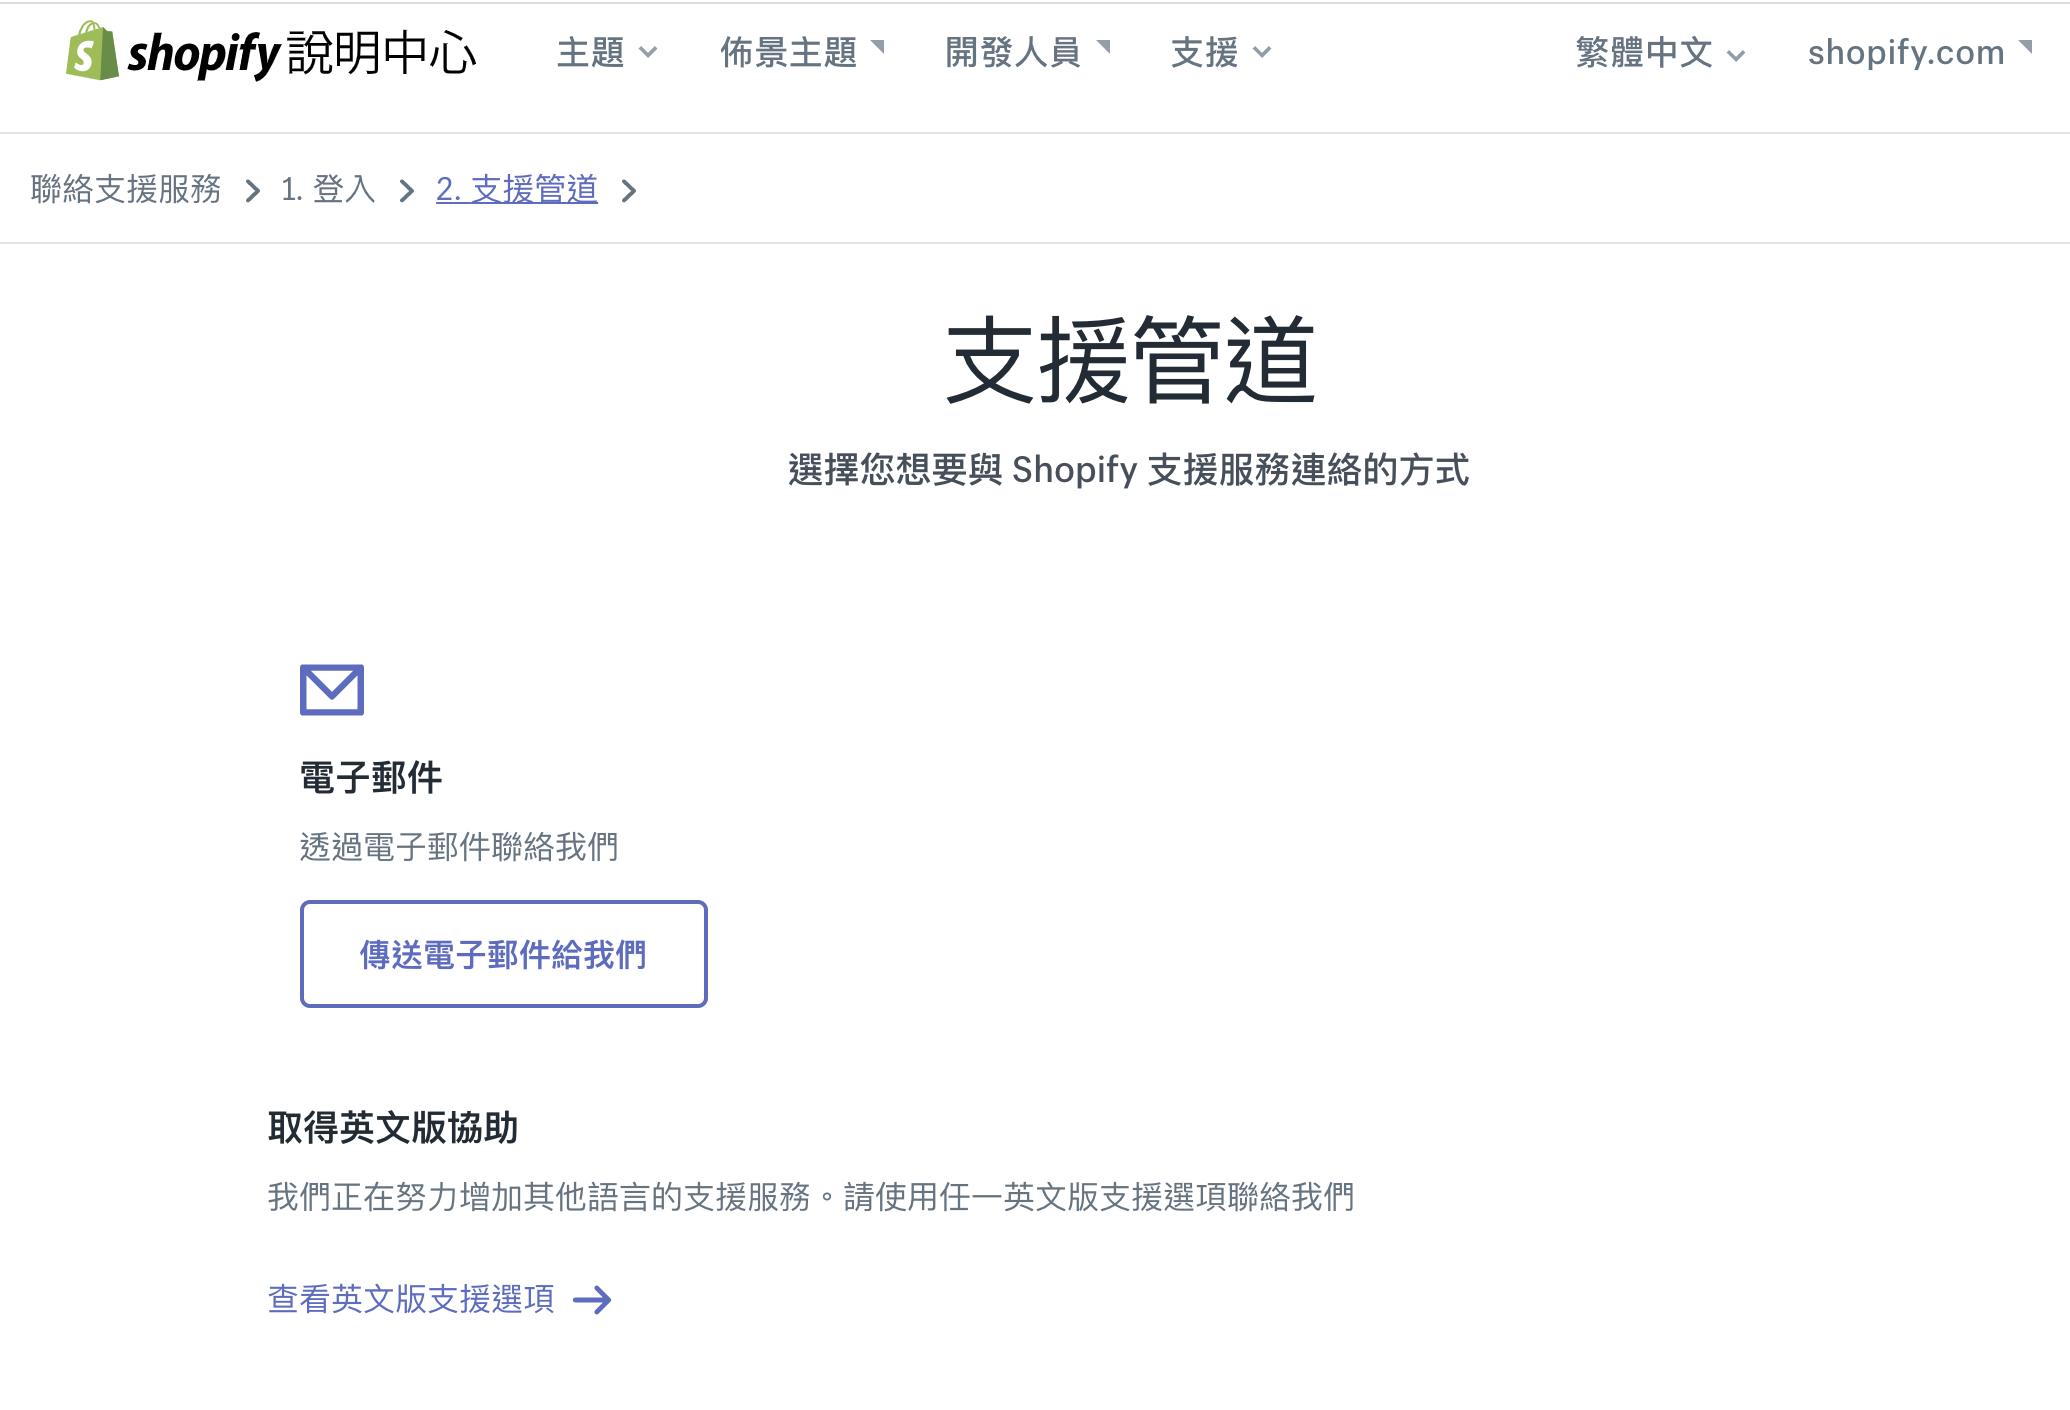 Shopify customer service support in Chinese